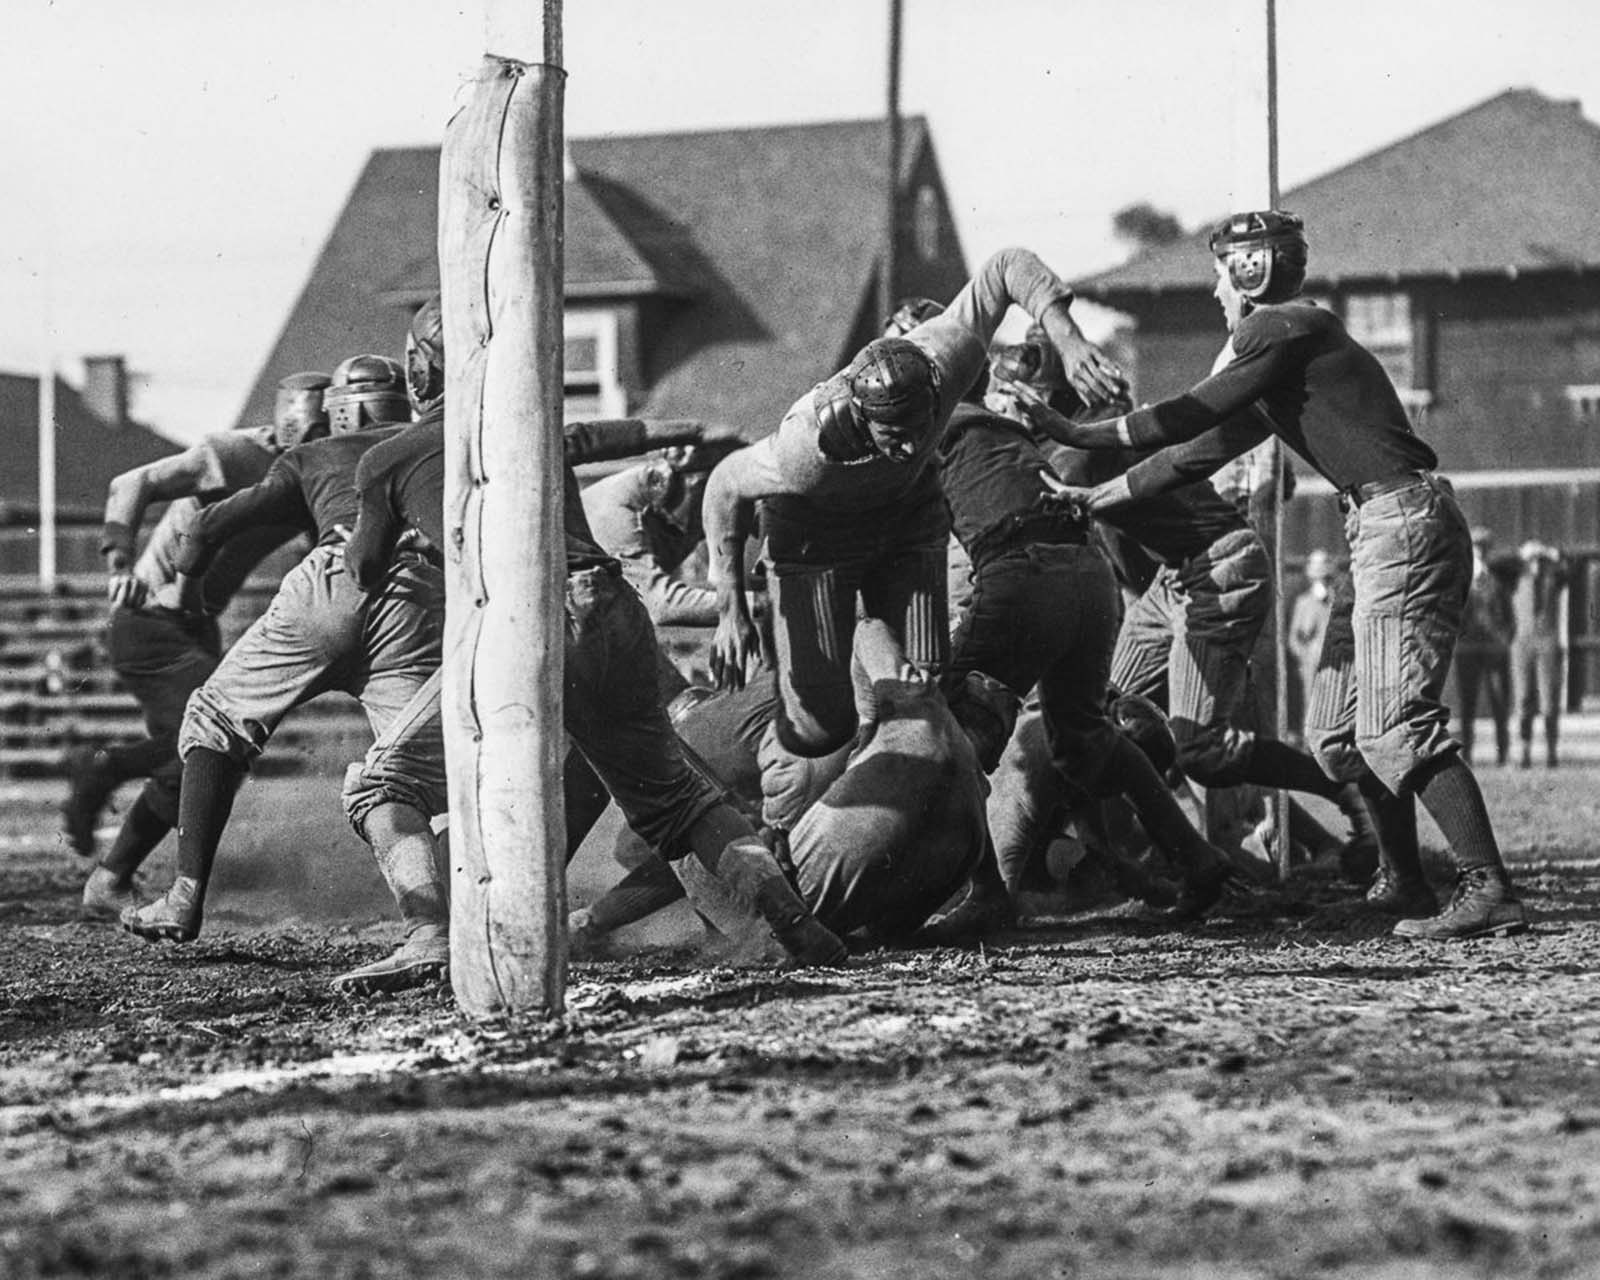 The University of Southern California Trojans football team compete against the Los Angeles High School Romans at the Los Angeles Memorial Coliseum. 1915.